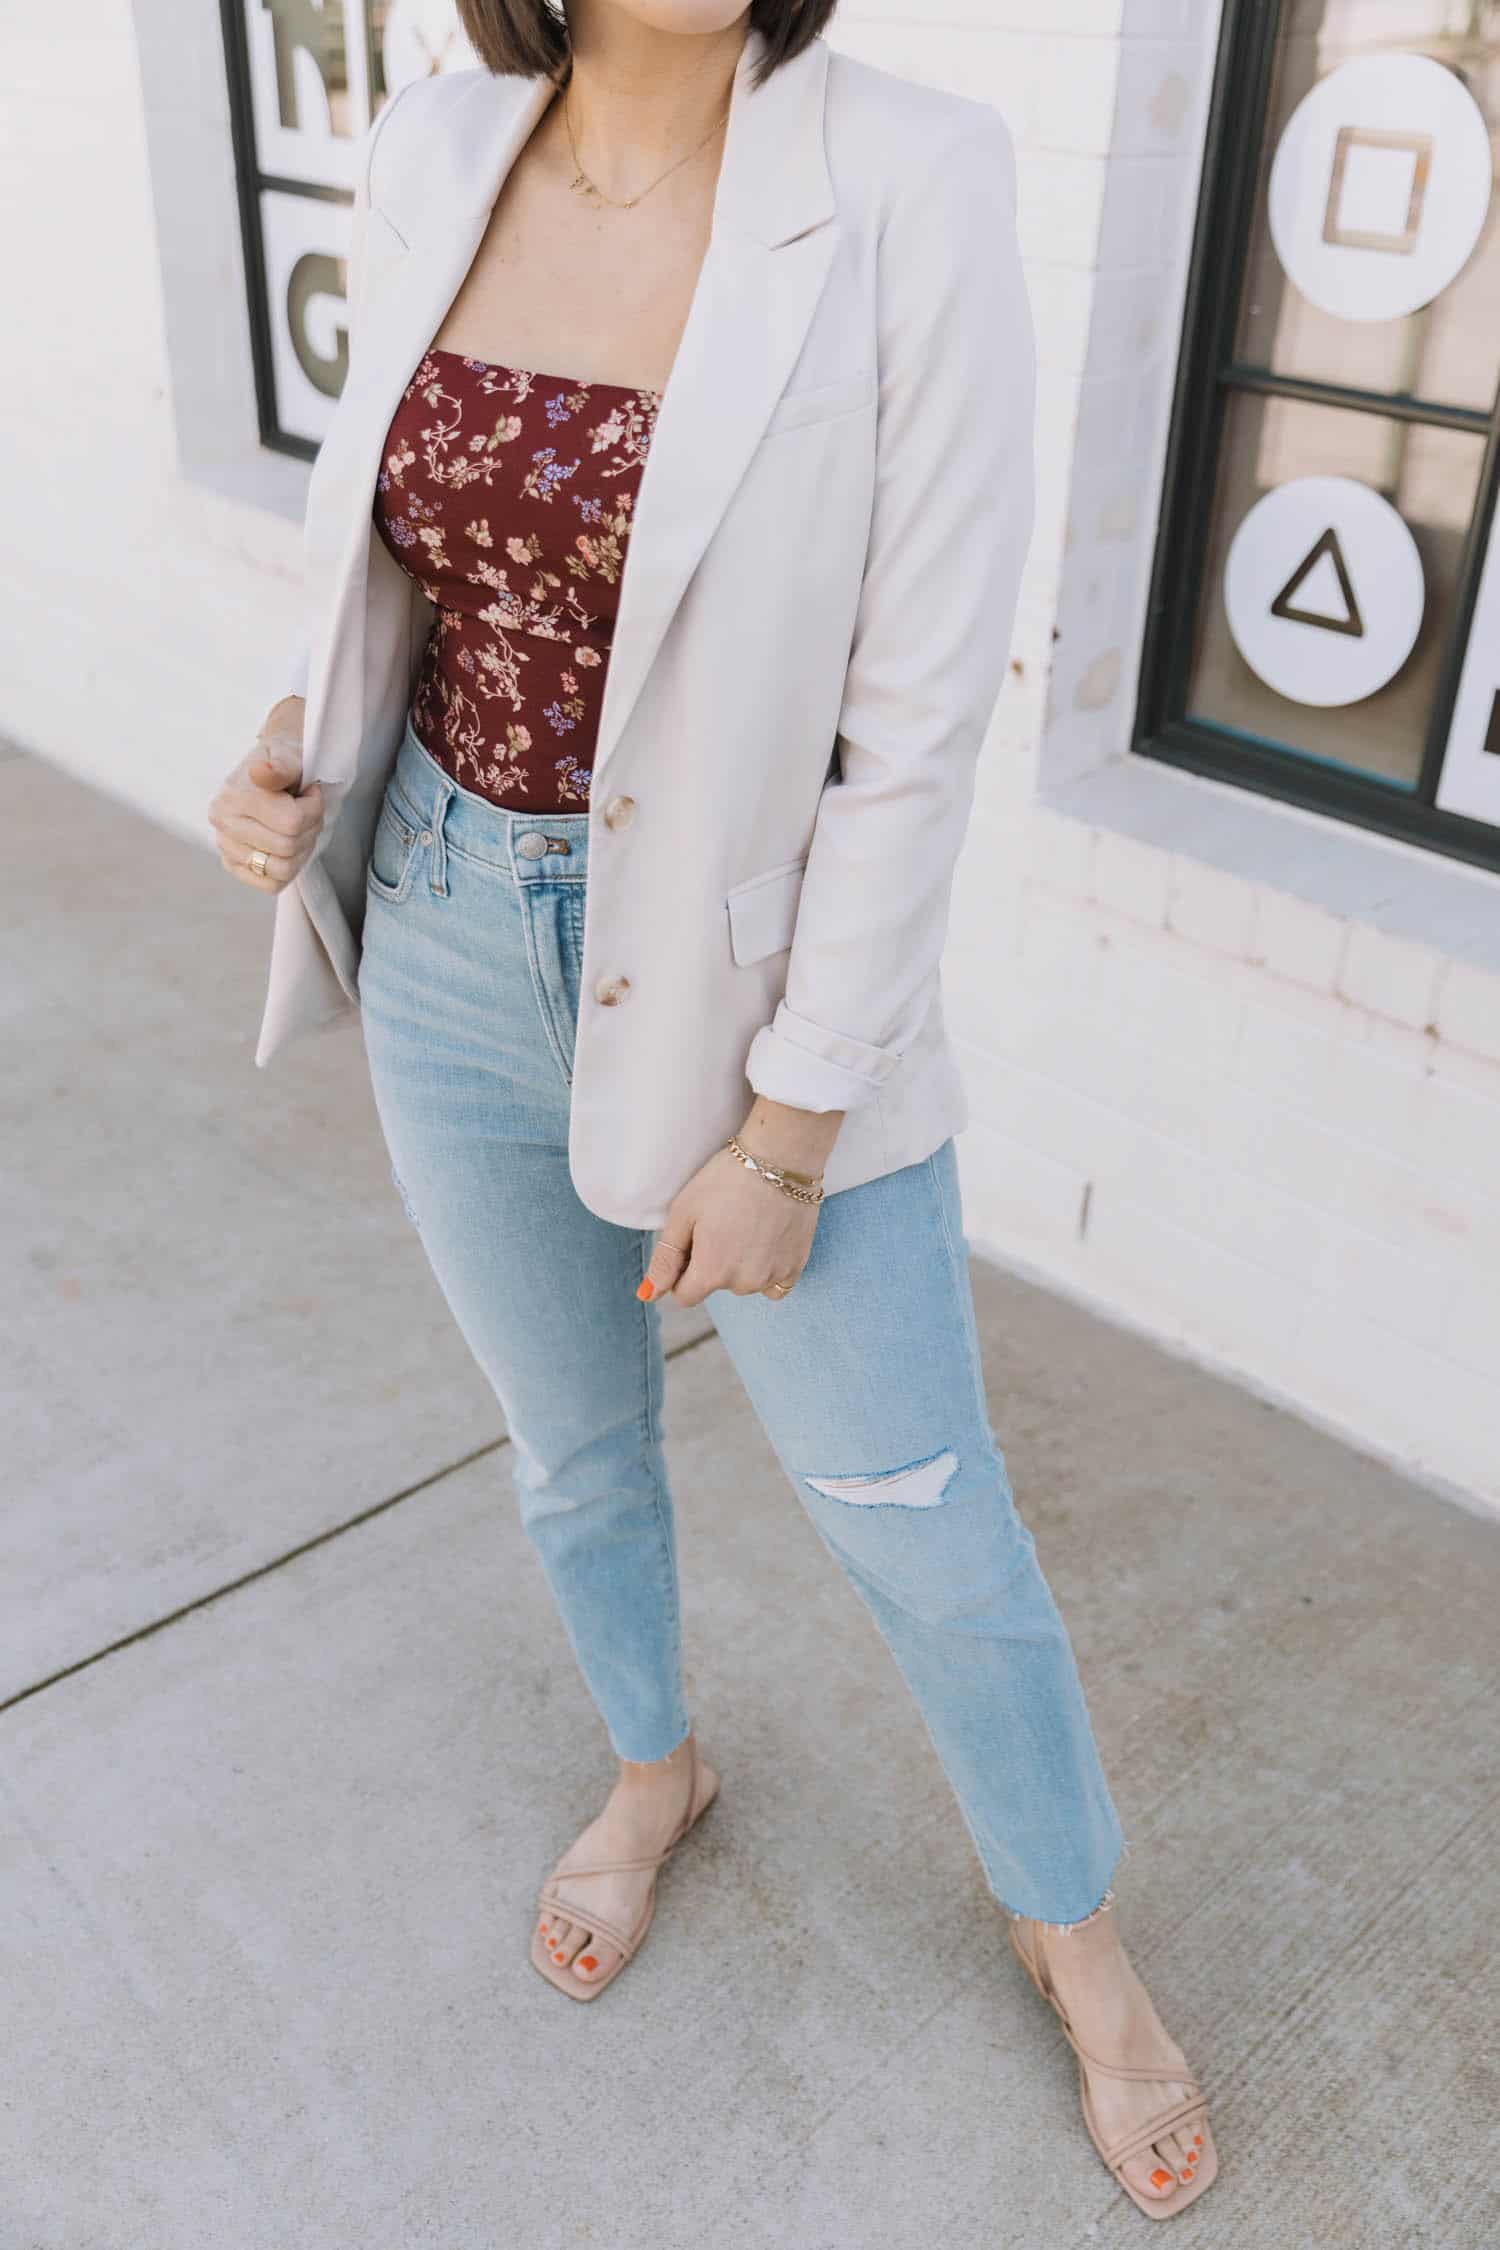 Abercrombie & Fitch blazer | Things That Stood The Test Of Time